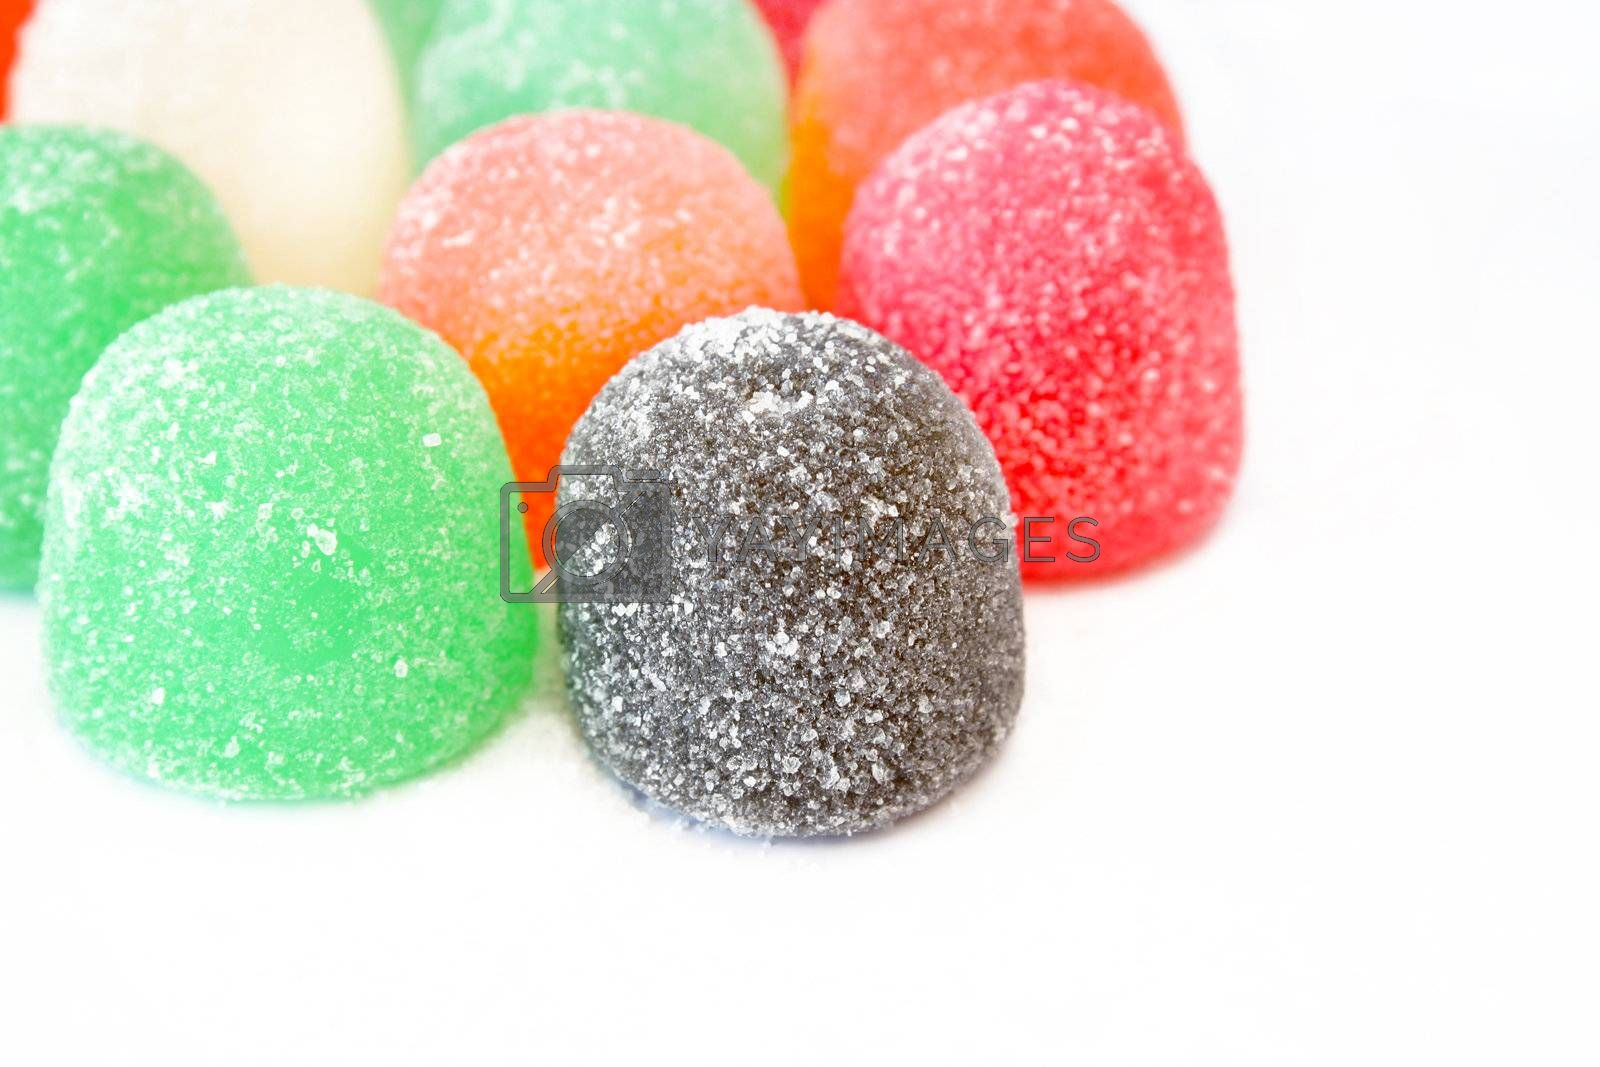 Close up of gumdrops on a white background with copy space.